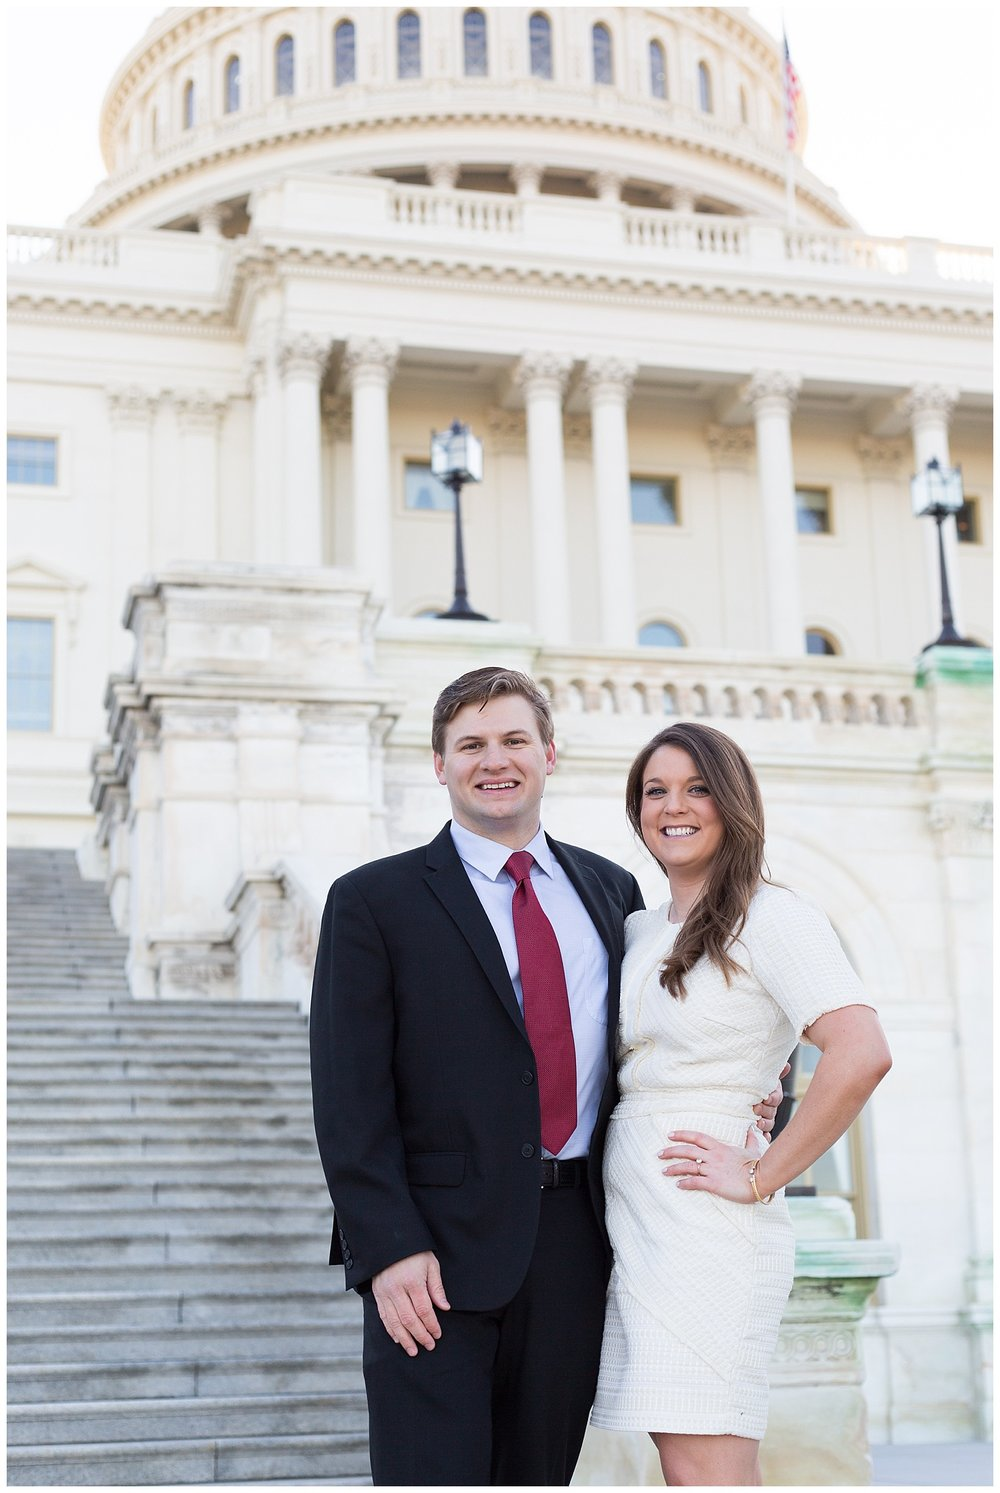 emily-belson-photography-us-capitol-engagement-016.jpg